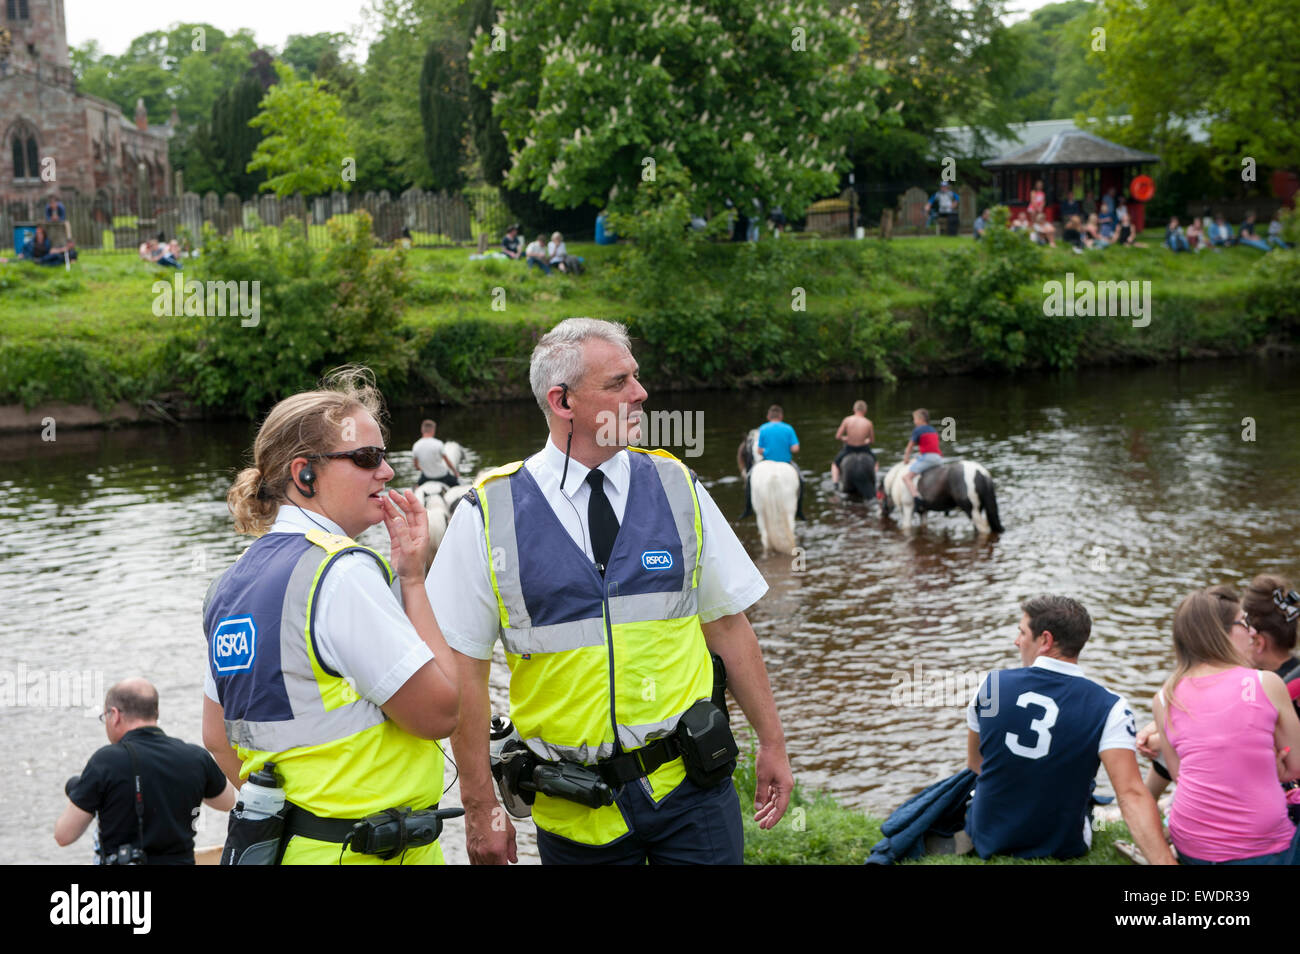 RSPCA officials at the Appleby horse fair, making sure no animals are ill treated. UK - Stock Image